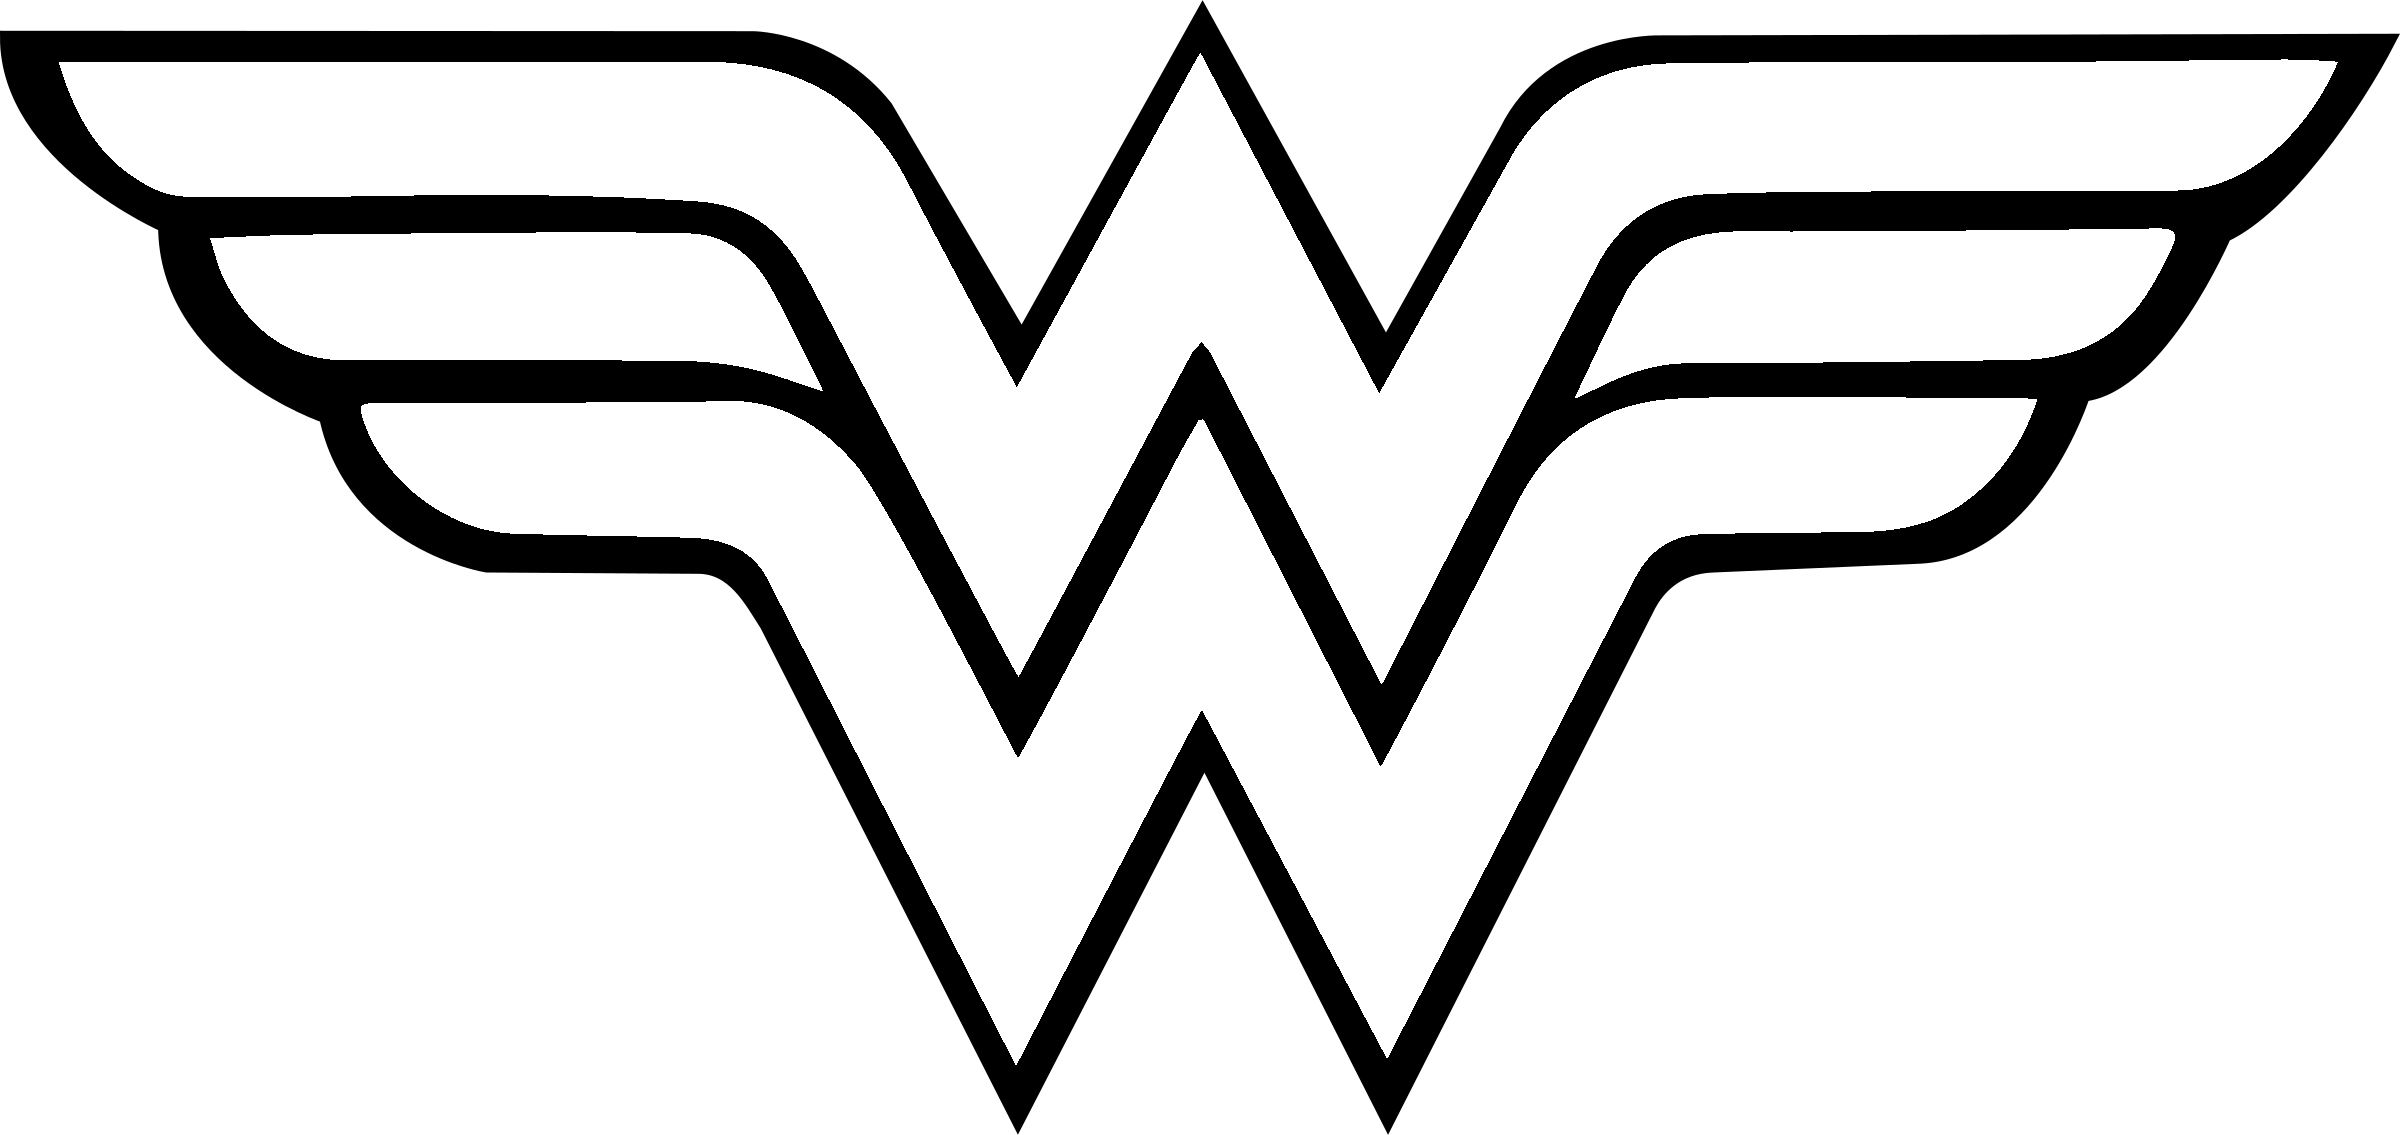 Woman transparent svg vector. Wonder women logo png banner download